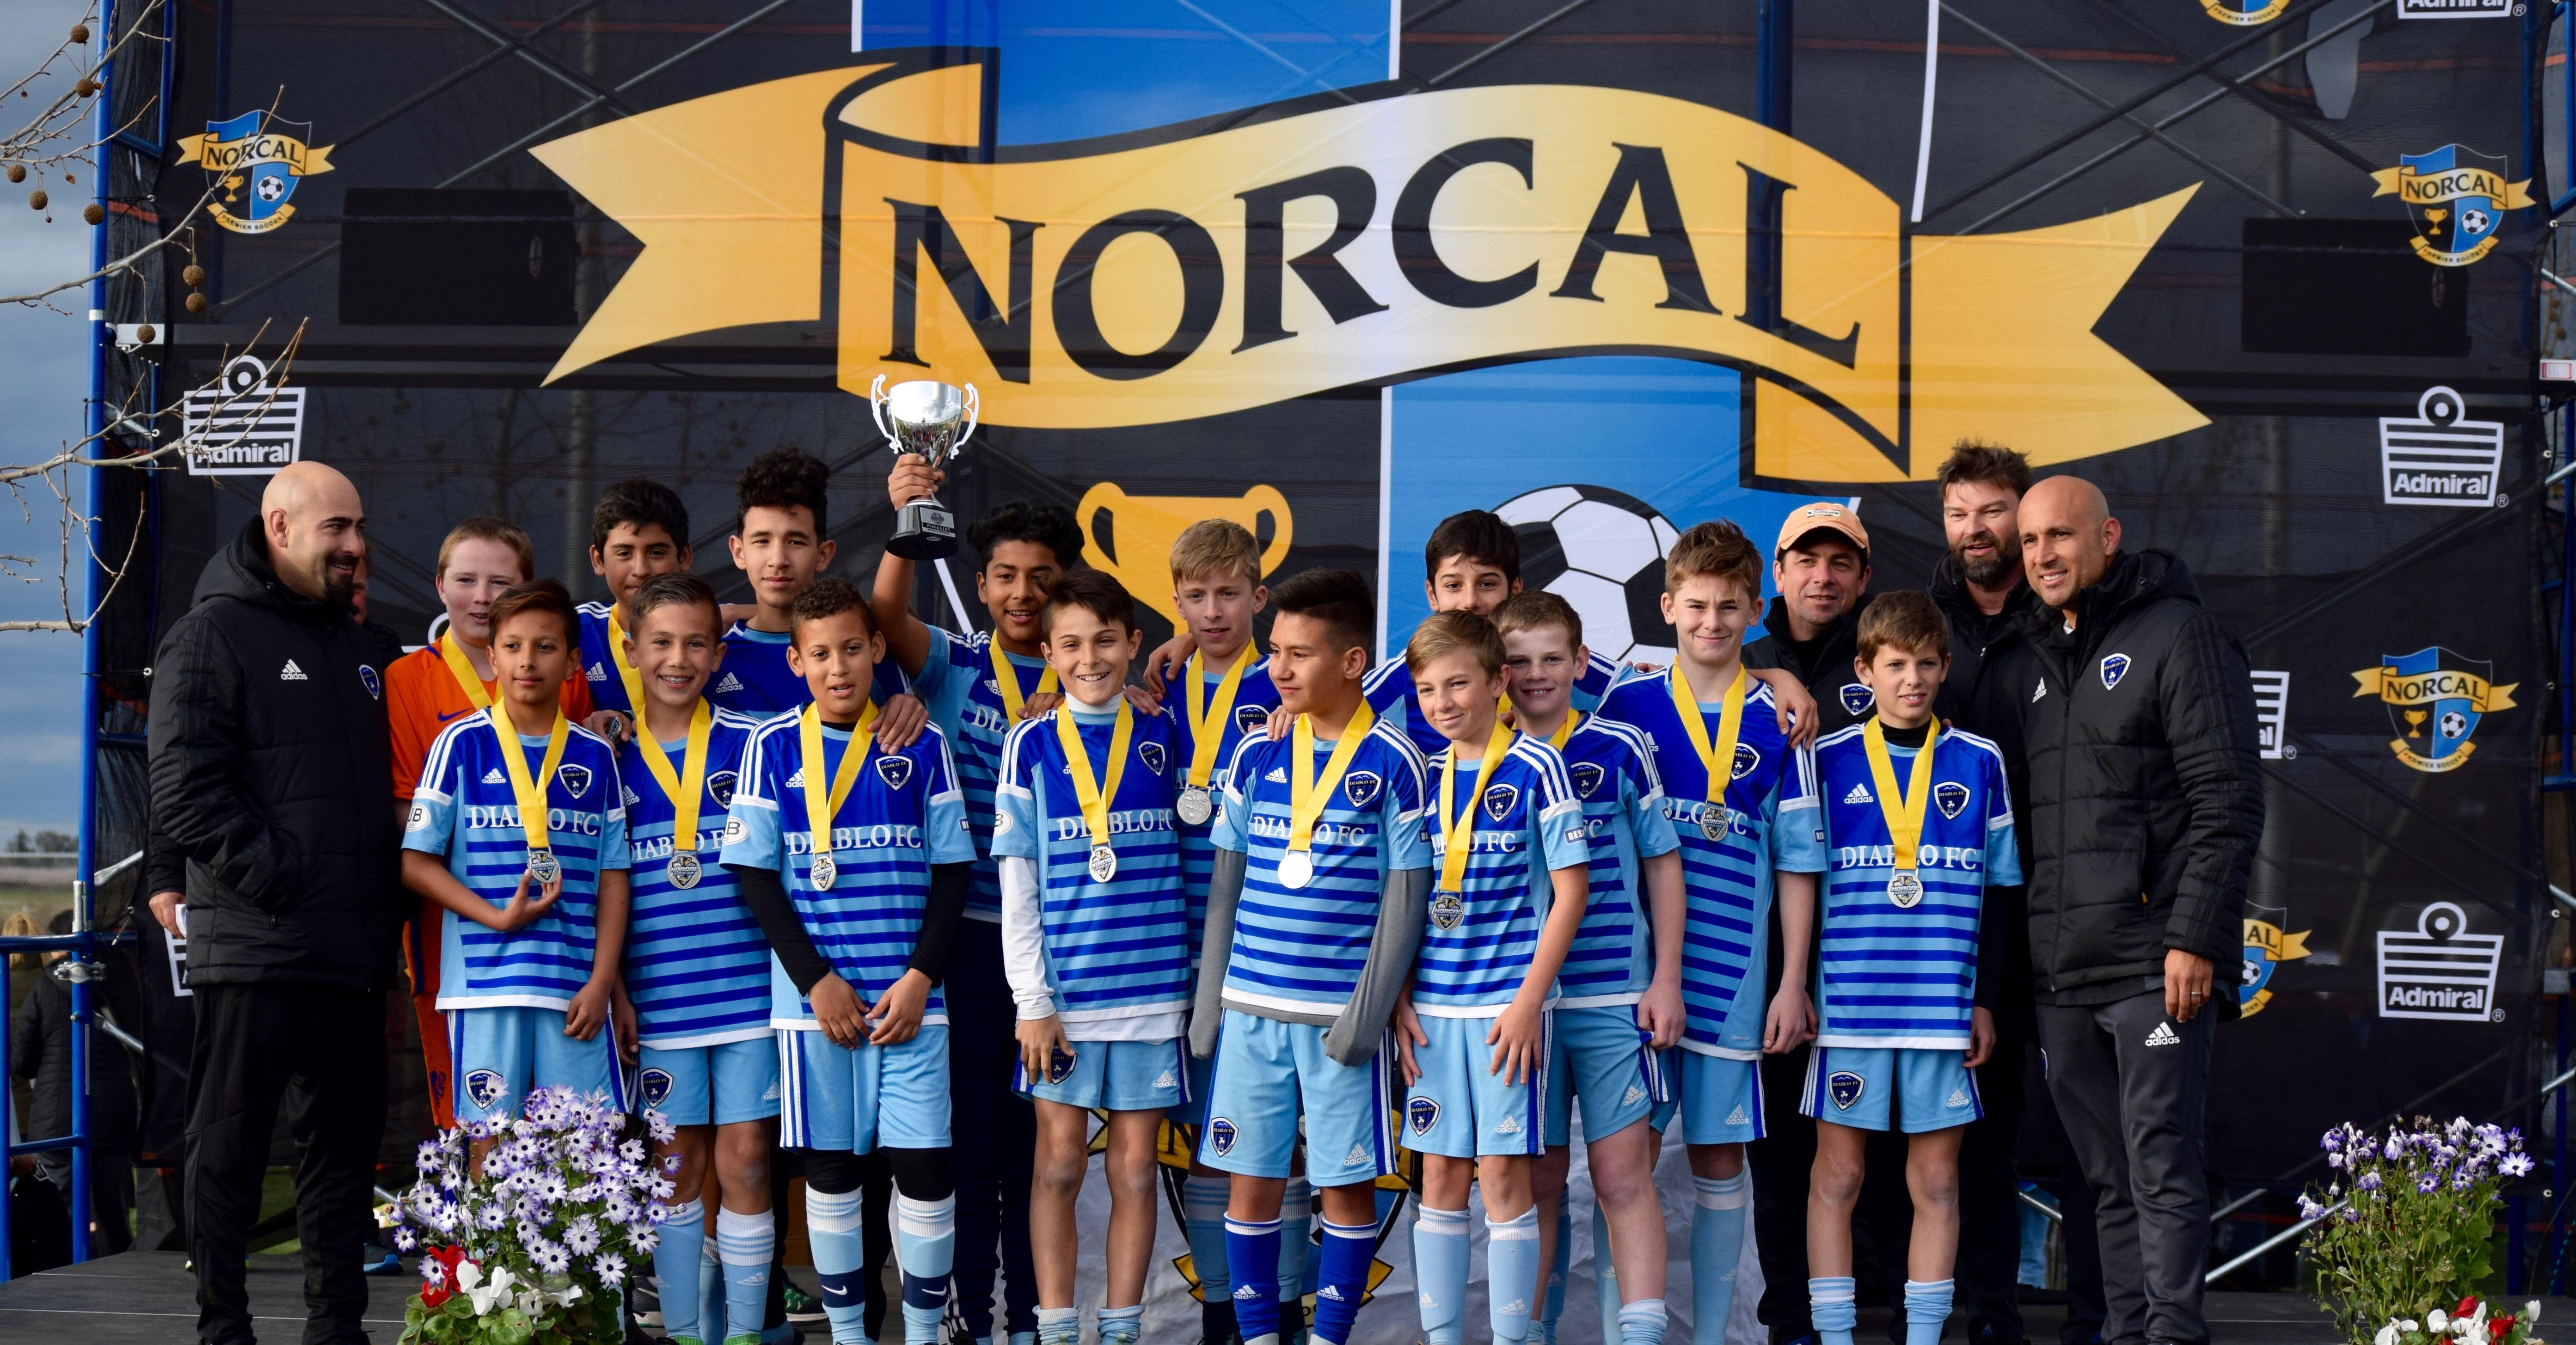 '05 Boys finish 10th out of all teams in NorCal State Cup